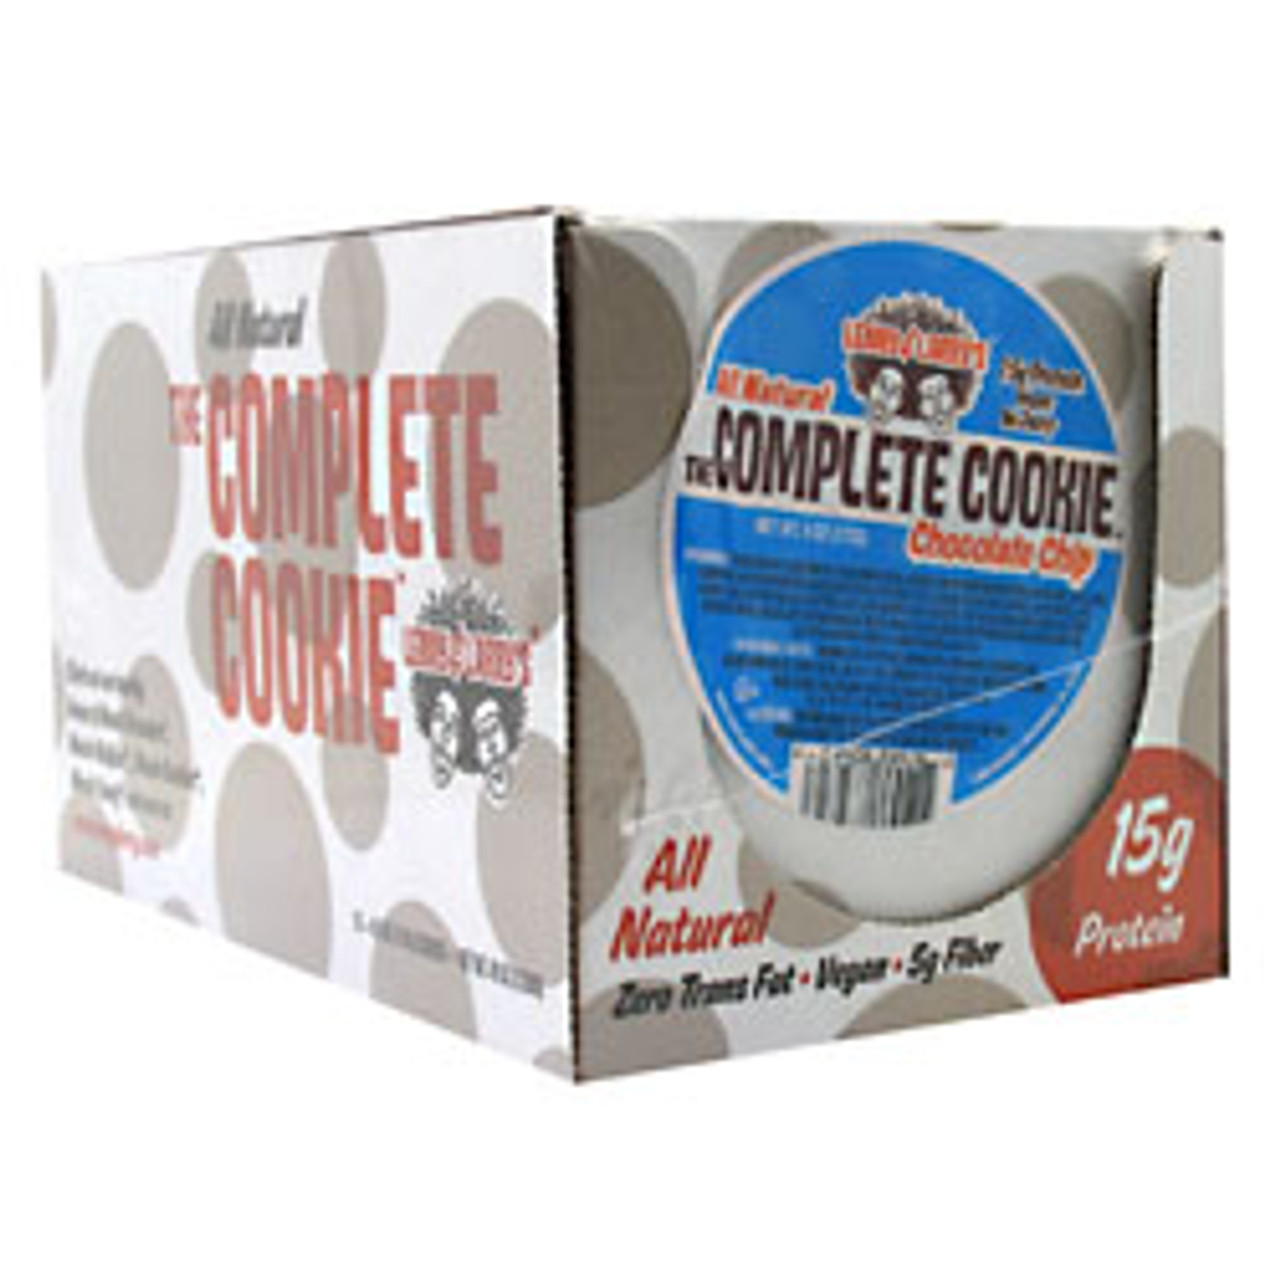 The Complete Cookie 12pk Lenny & Larry's